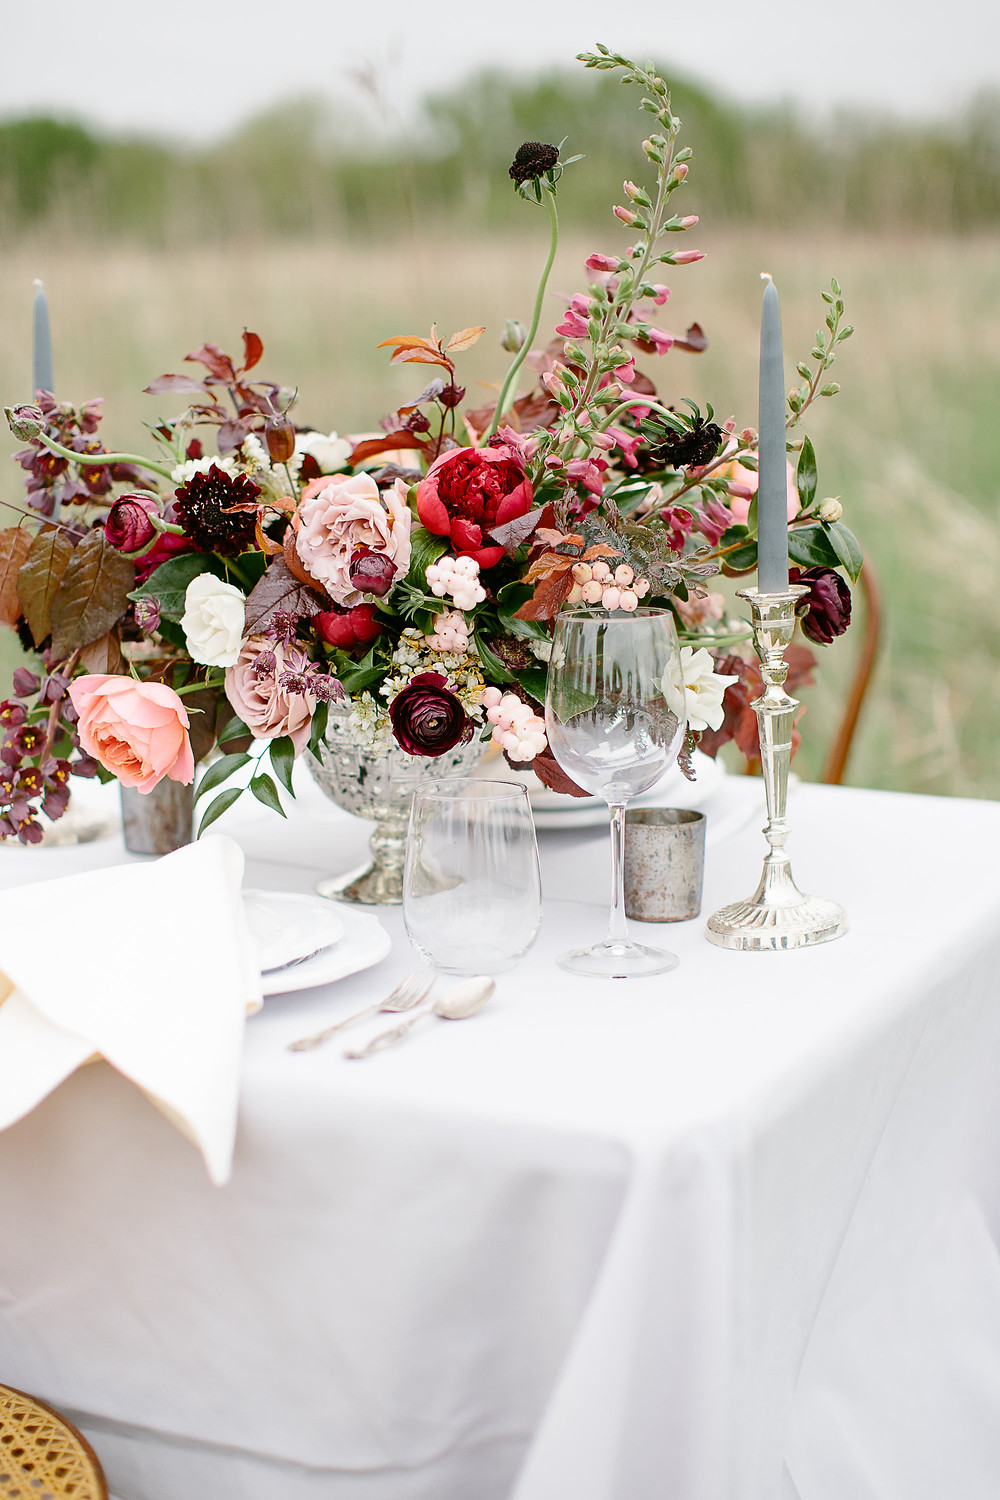 whimsical wedding reception floral centerpiece by studio bloom iowa in tones of burgundy and peach in silver mercury glass